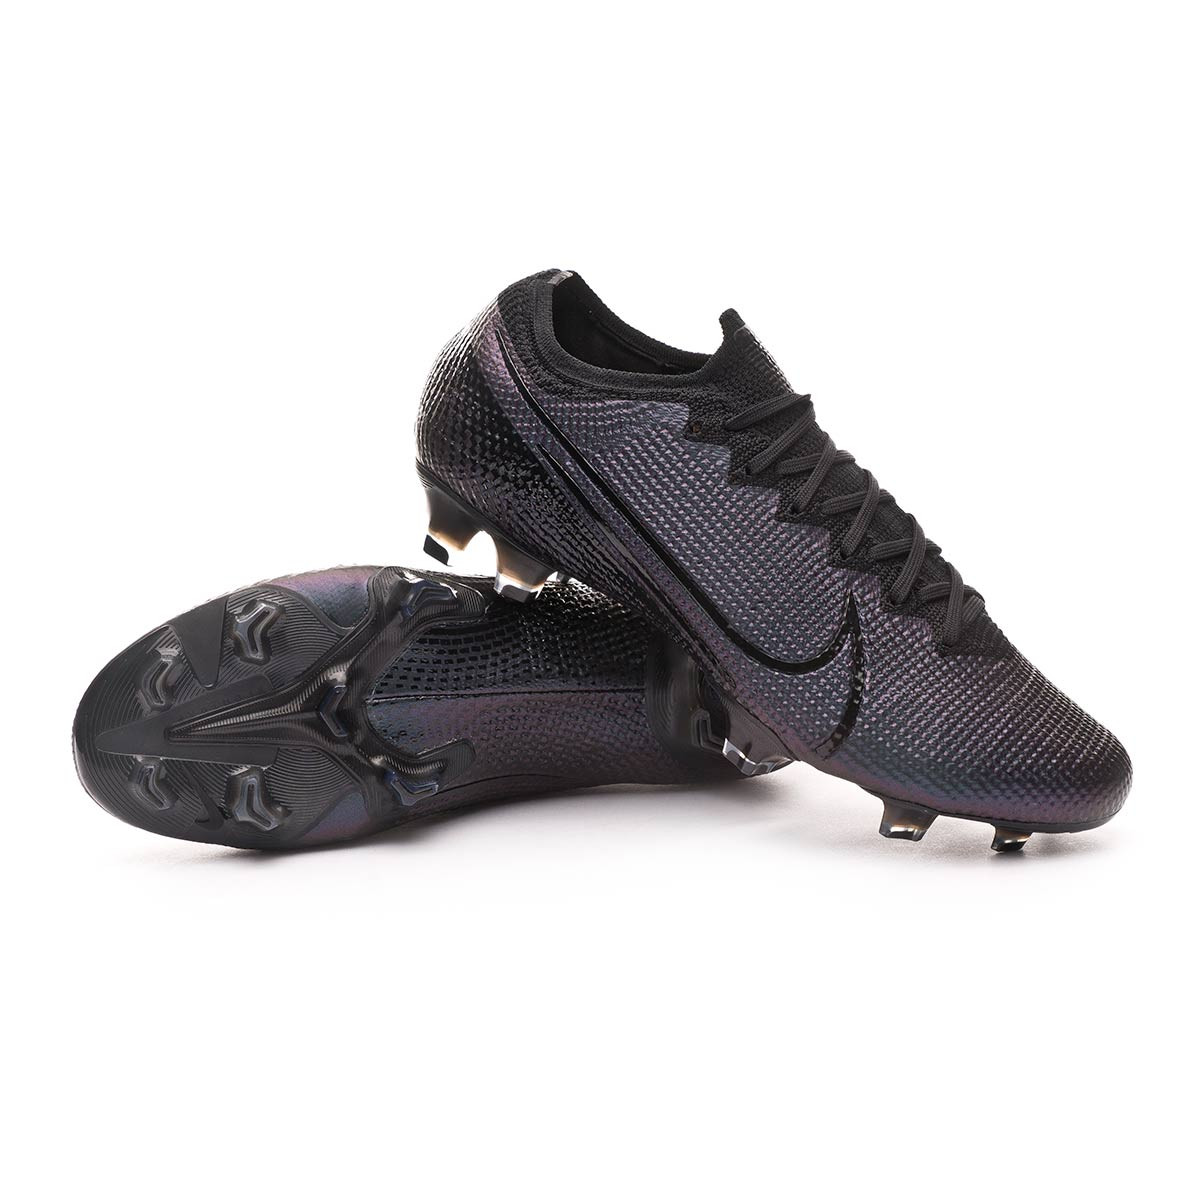 martes Descubrir corrupción  Football Boots Nike Mercurial Vapor XIII Elite FG Black - Football store  Fútbol Emotion